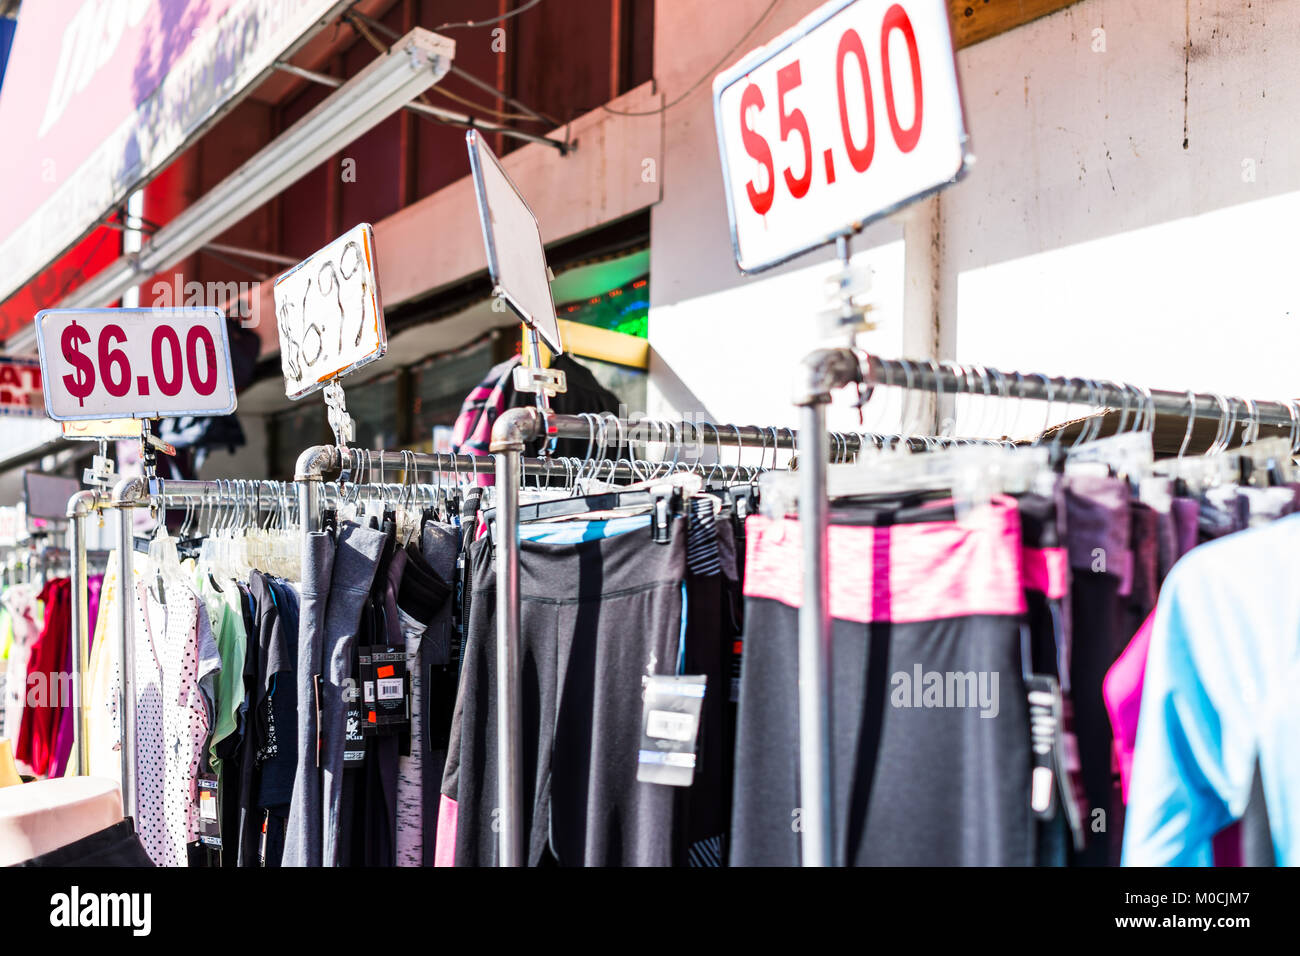 a3892bcc4d Cheap Designer Clothes Stock Photos   Cheap Designer Clothes Stock ...